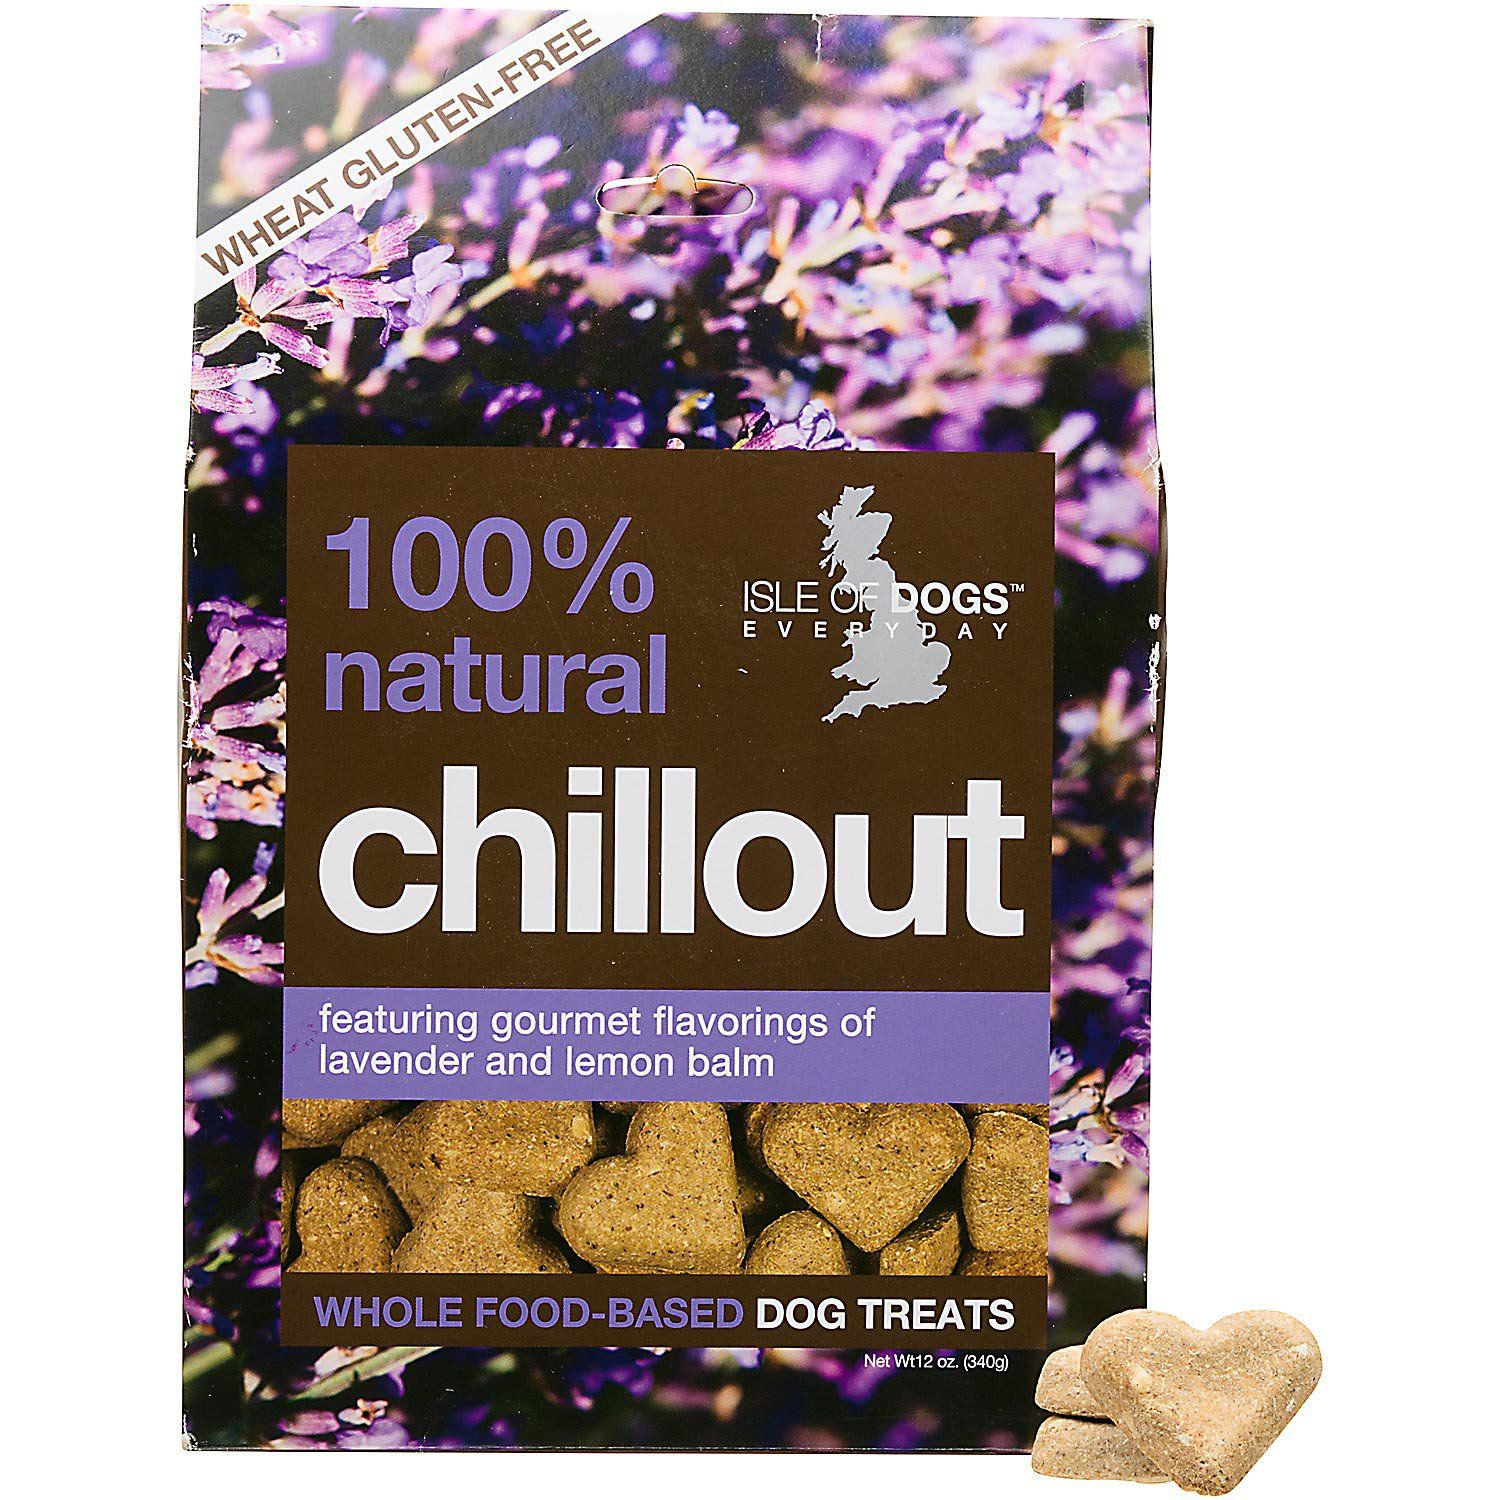 Lavender Treat - No Meat or Byproducts - Would be good for boarding   Petco.com